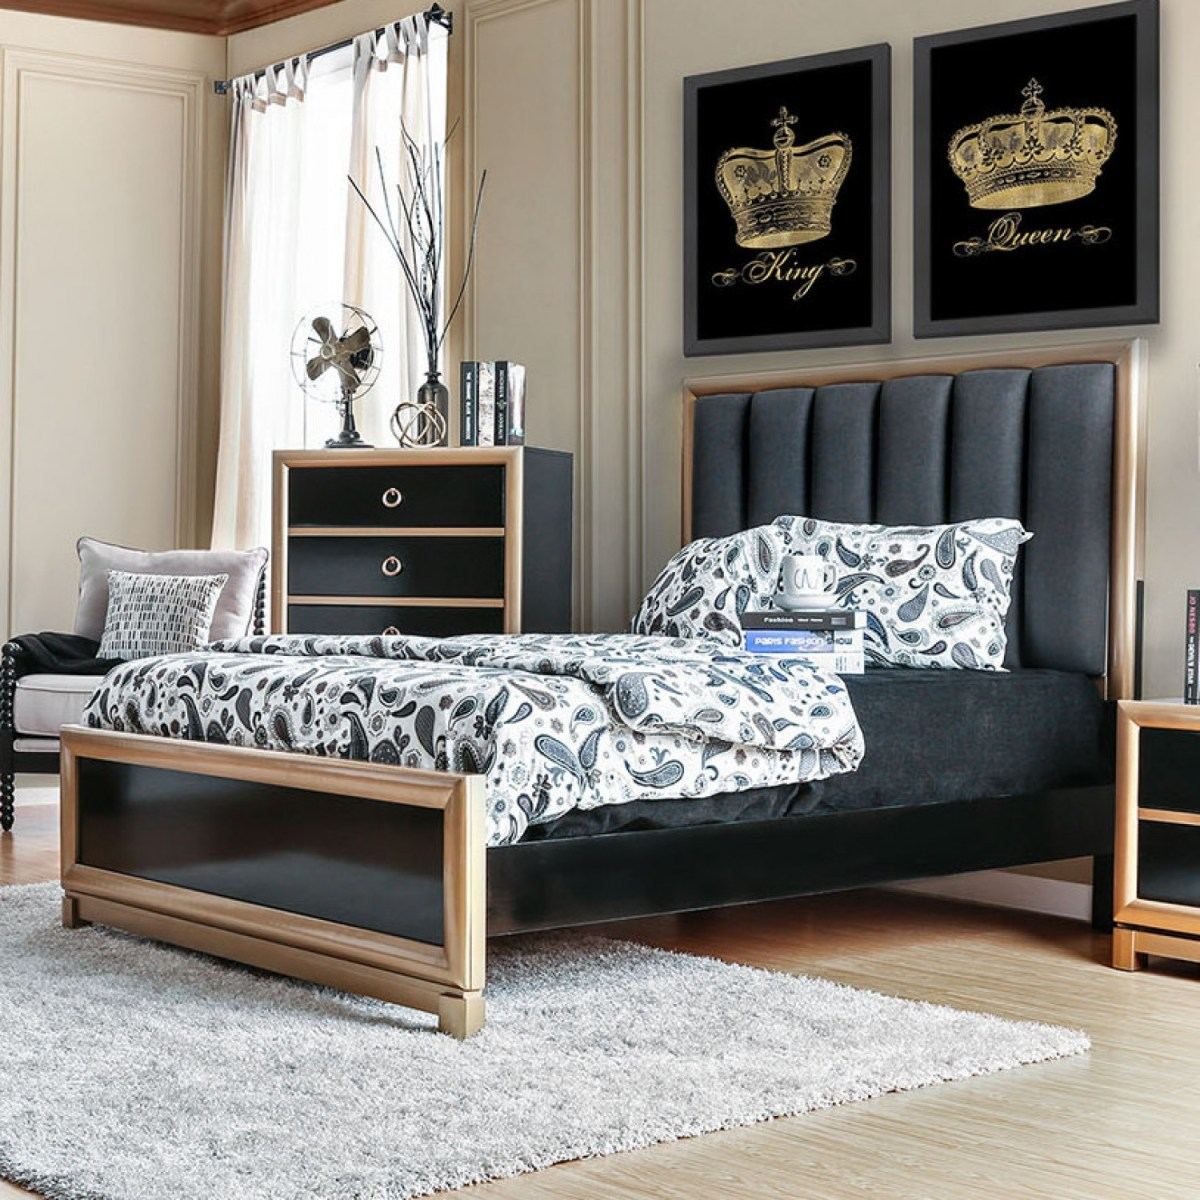 Bedroom furniture queen bed black gold foa hot sectionals - White and gold bedroom furniture set ...